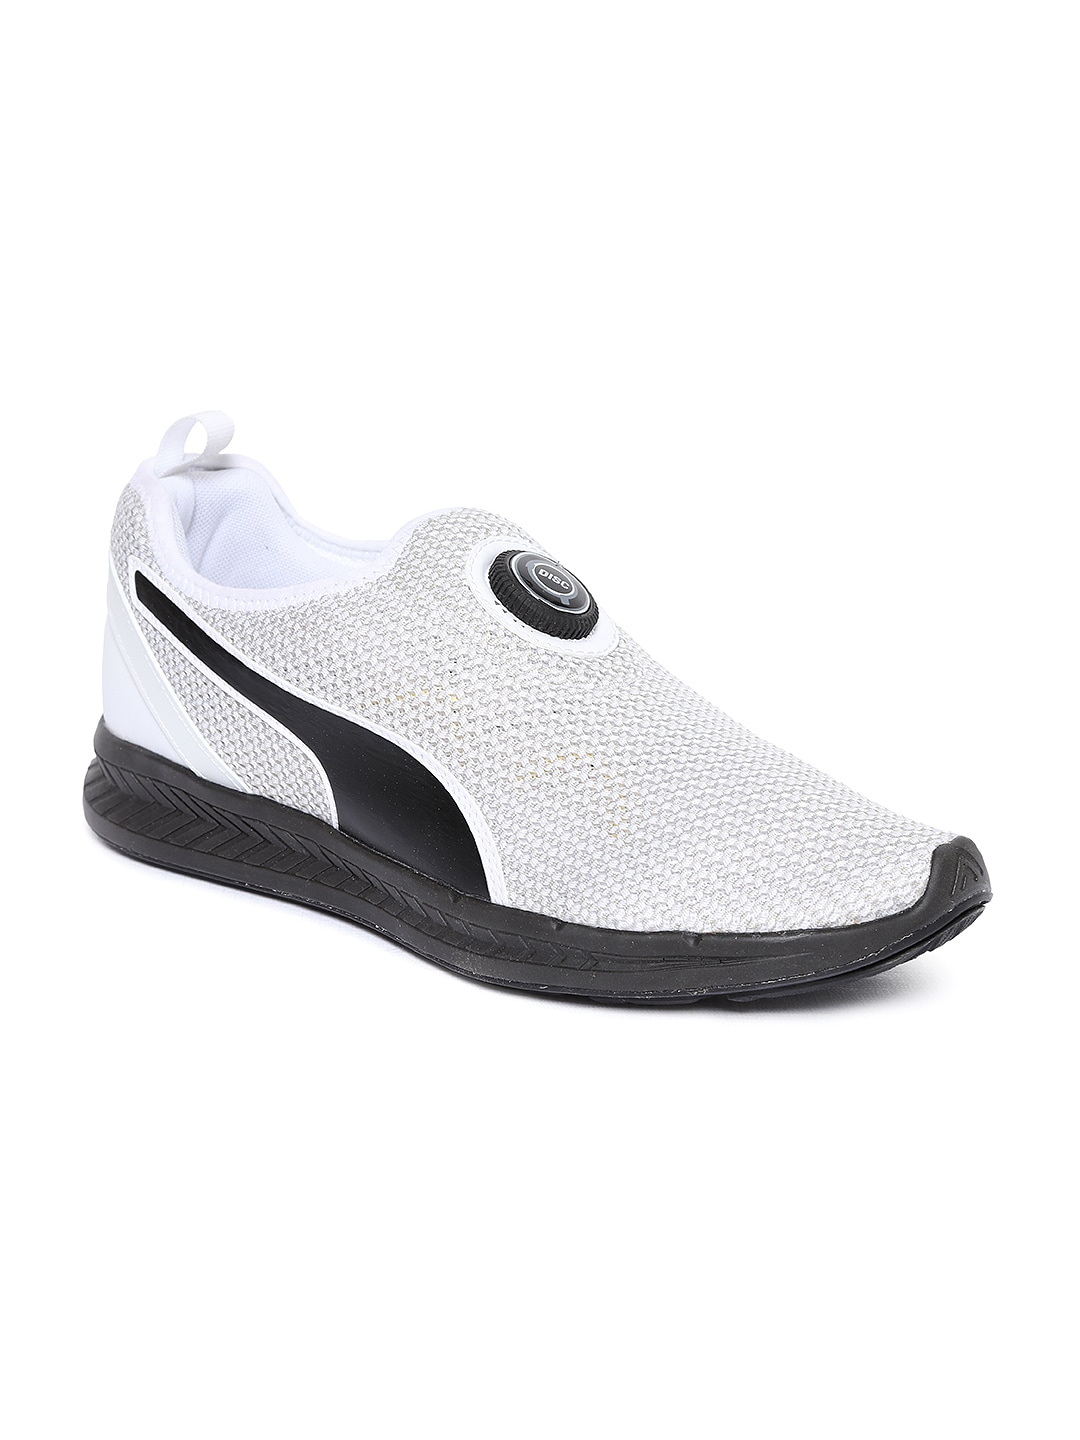 Puma 36128303 Women Black Disc Sleeve Ignite Knit Casual Shoes- Price in  India 308f56362